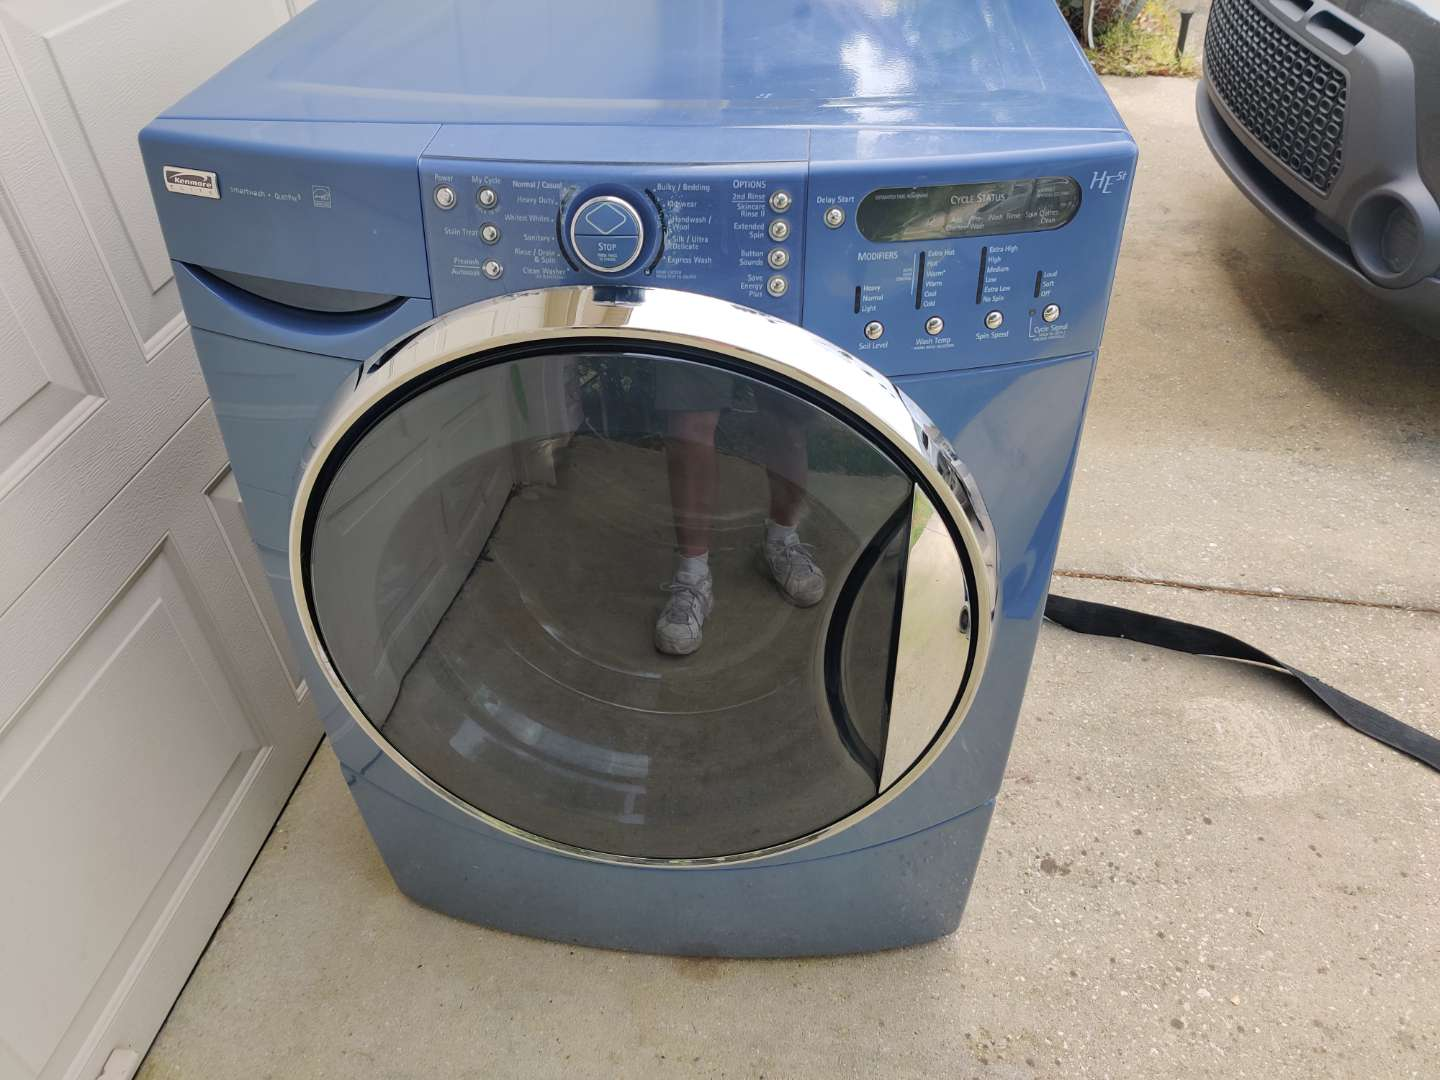 # 83 blue Kenmore elite front load washing machine comes with the stand and the drawer works